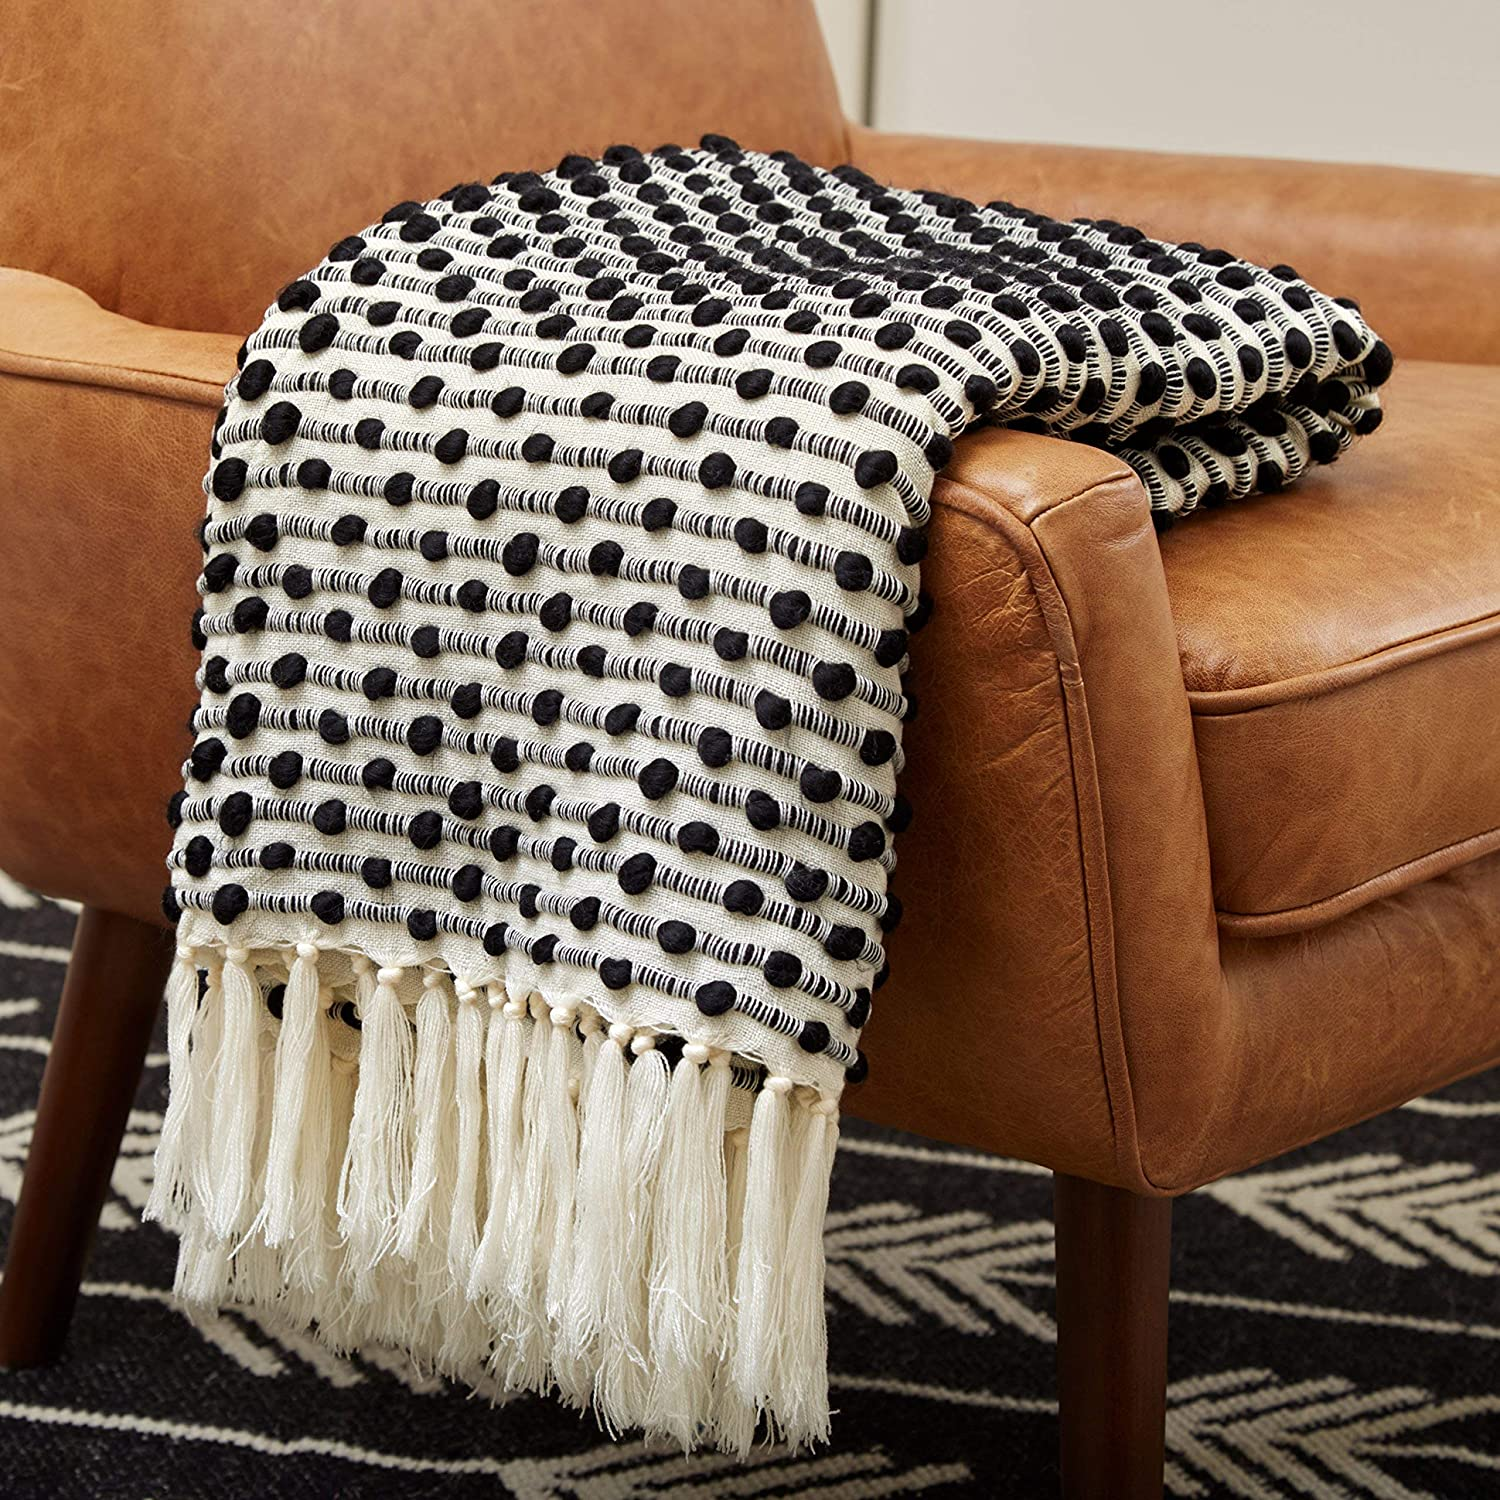 "Rivet Bubble Textured Lightweight Decorative Fringe Throw Blanket, 48"" x 60"", Black and Cream"